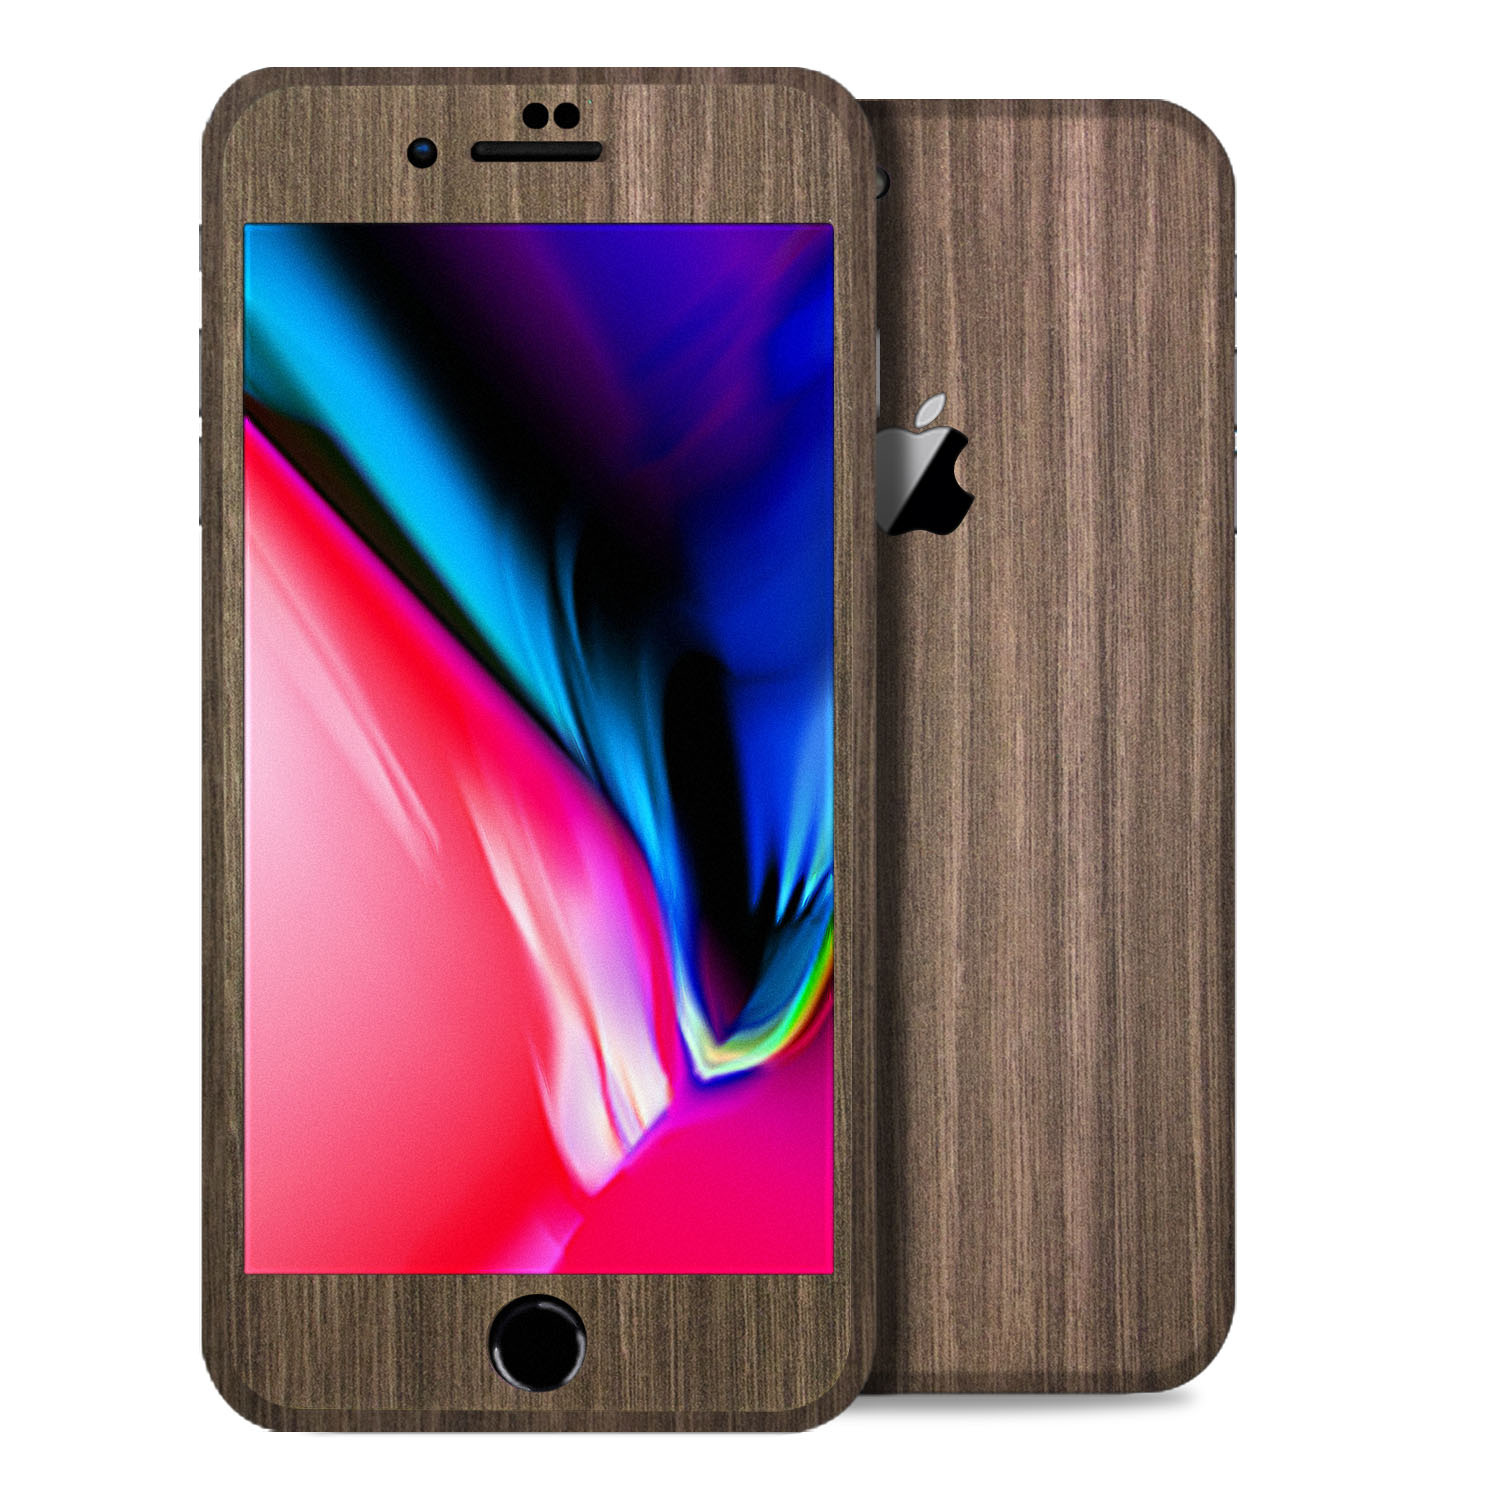 Apple iPhone 8 Plus Vinyl Skin Decal, Anti-Scratch Skin Cover for Apple iPhone 8 Brown Wood Texture - 2PK (1-Back & 1-Front) by SkylerShield